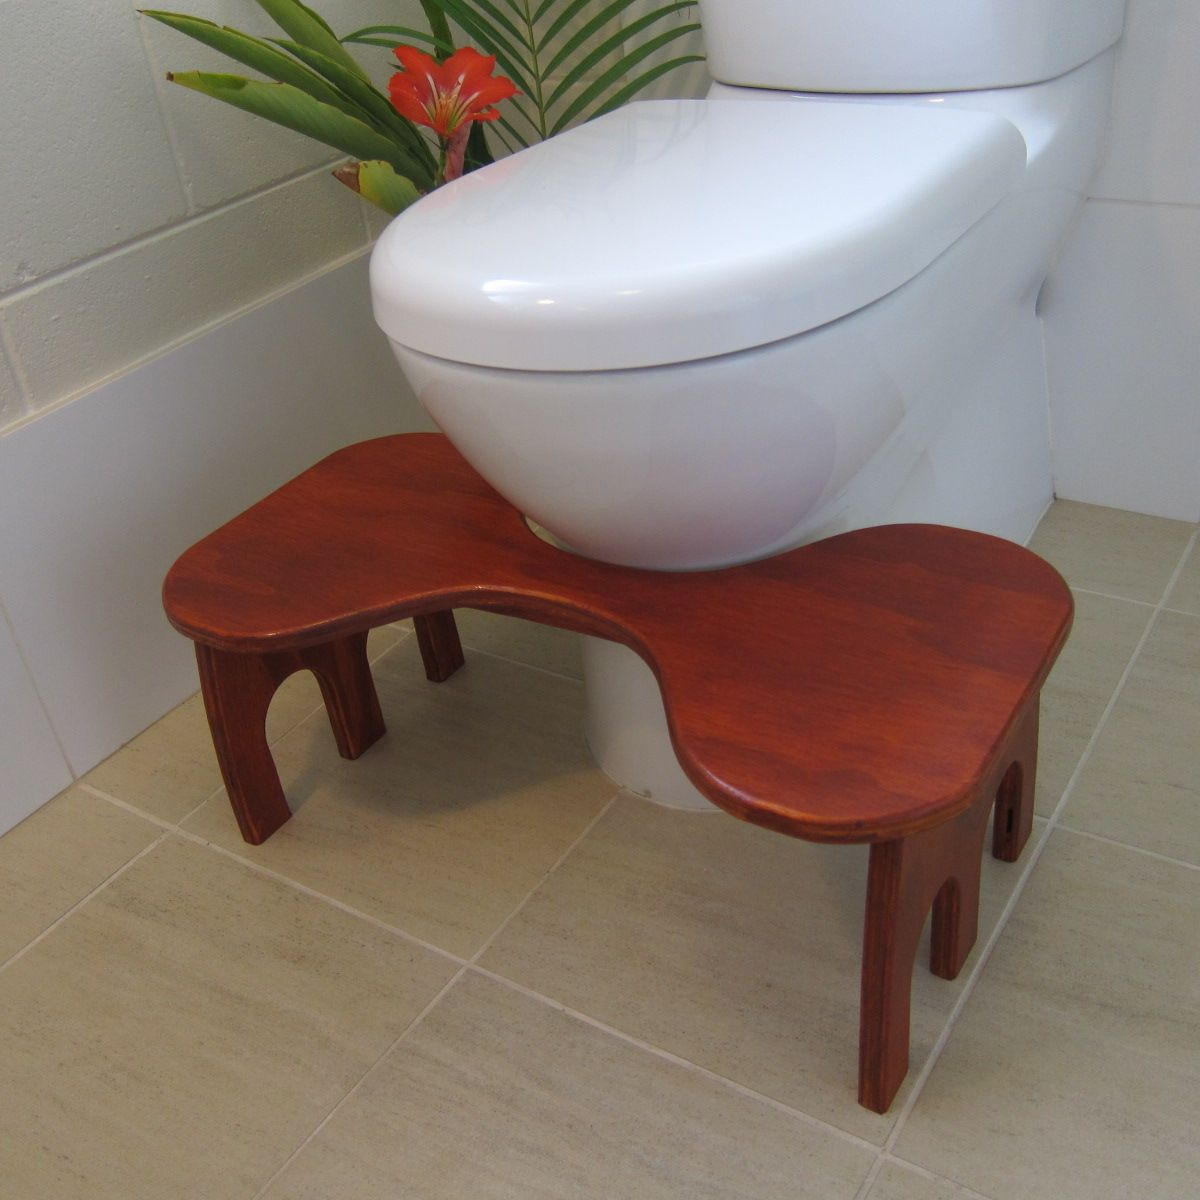 Easy Diy Squatty Potty: Toilet Stool In Position